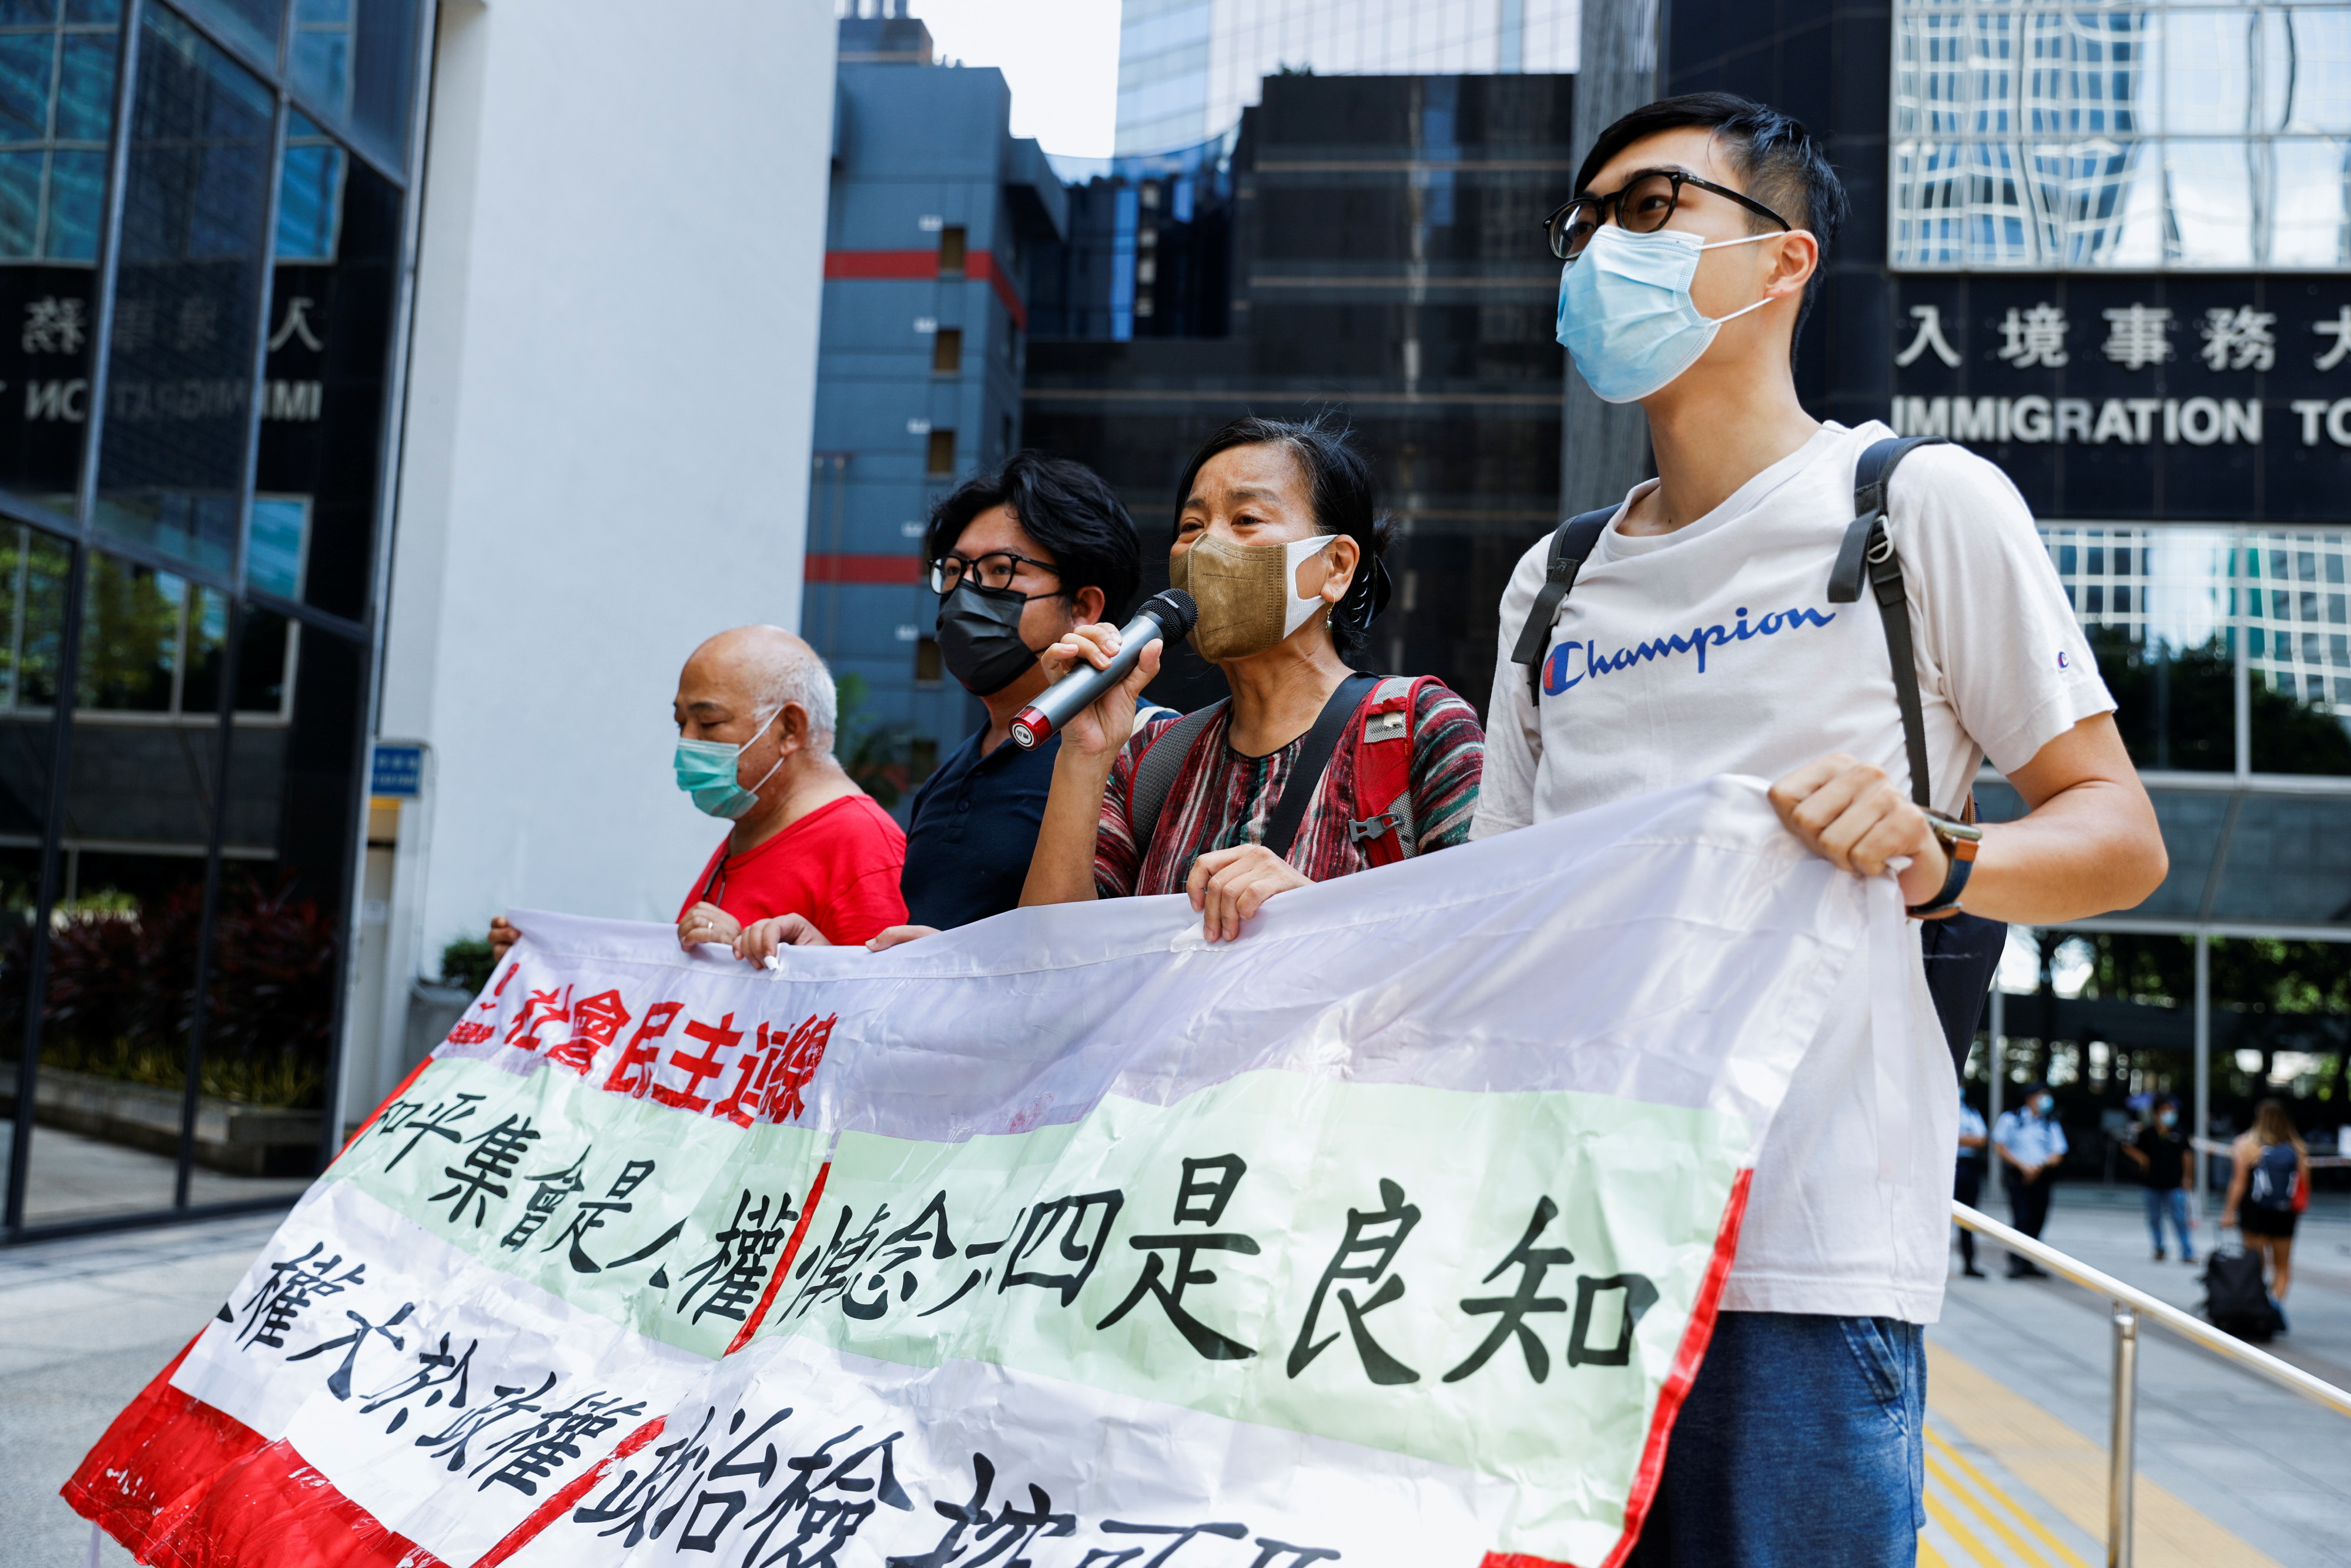 Pro-democracy activists shout slogans outside the court to support activists charged for participating in the assembly on June 4 to commemorate the 1989 crackdown on protesters in and around Beijing's Tiananmen Square, in Hong Kong, China, September 15, 2021. REUTERS/Tyrone Siu